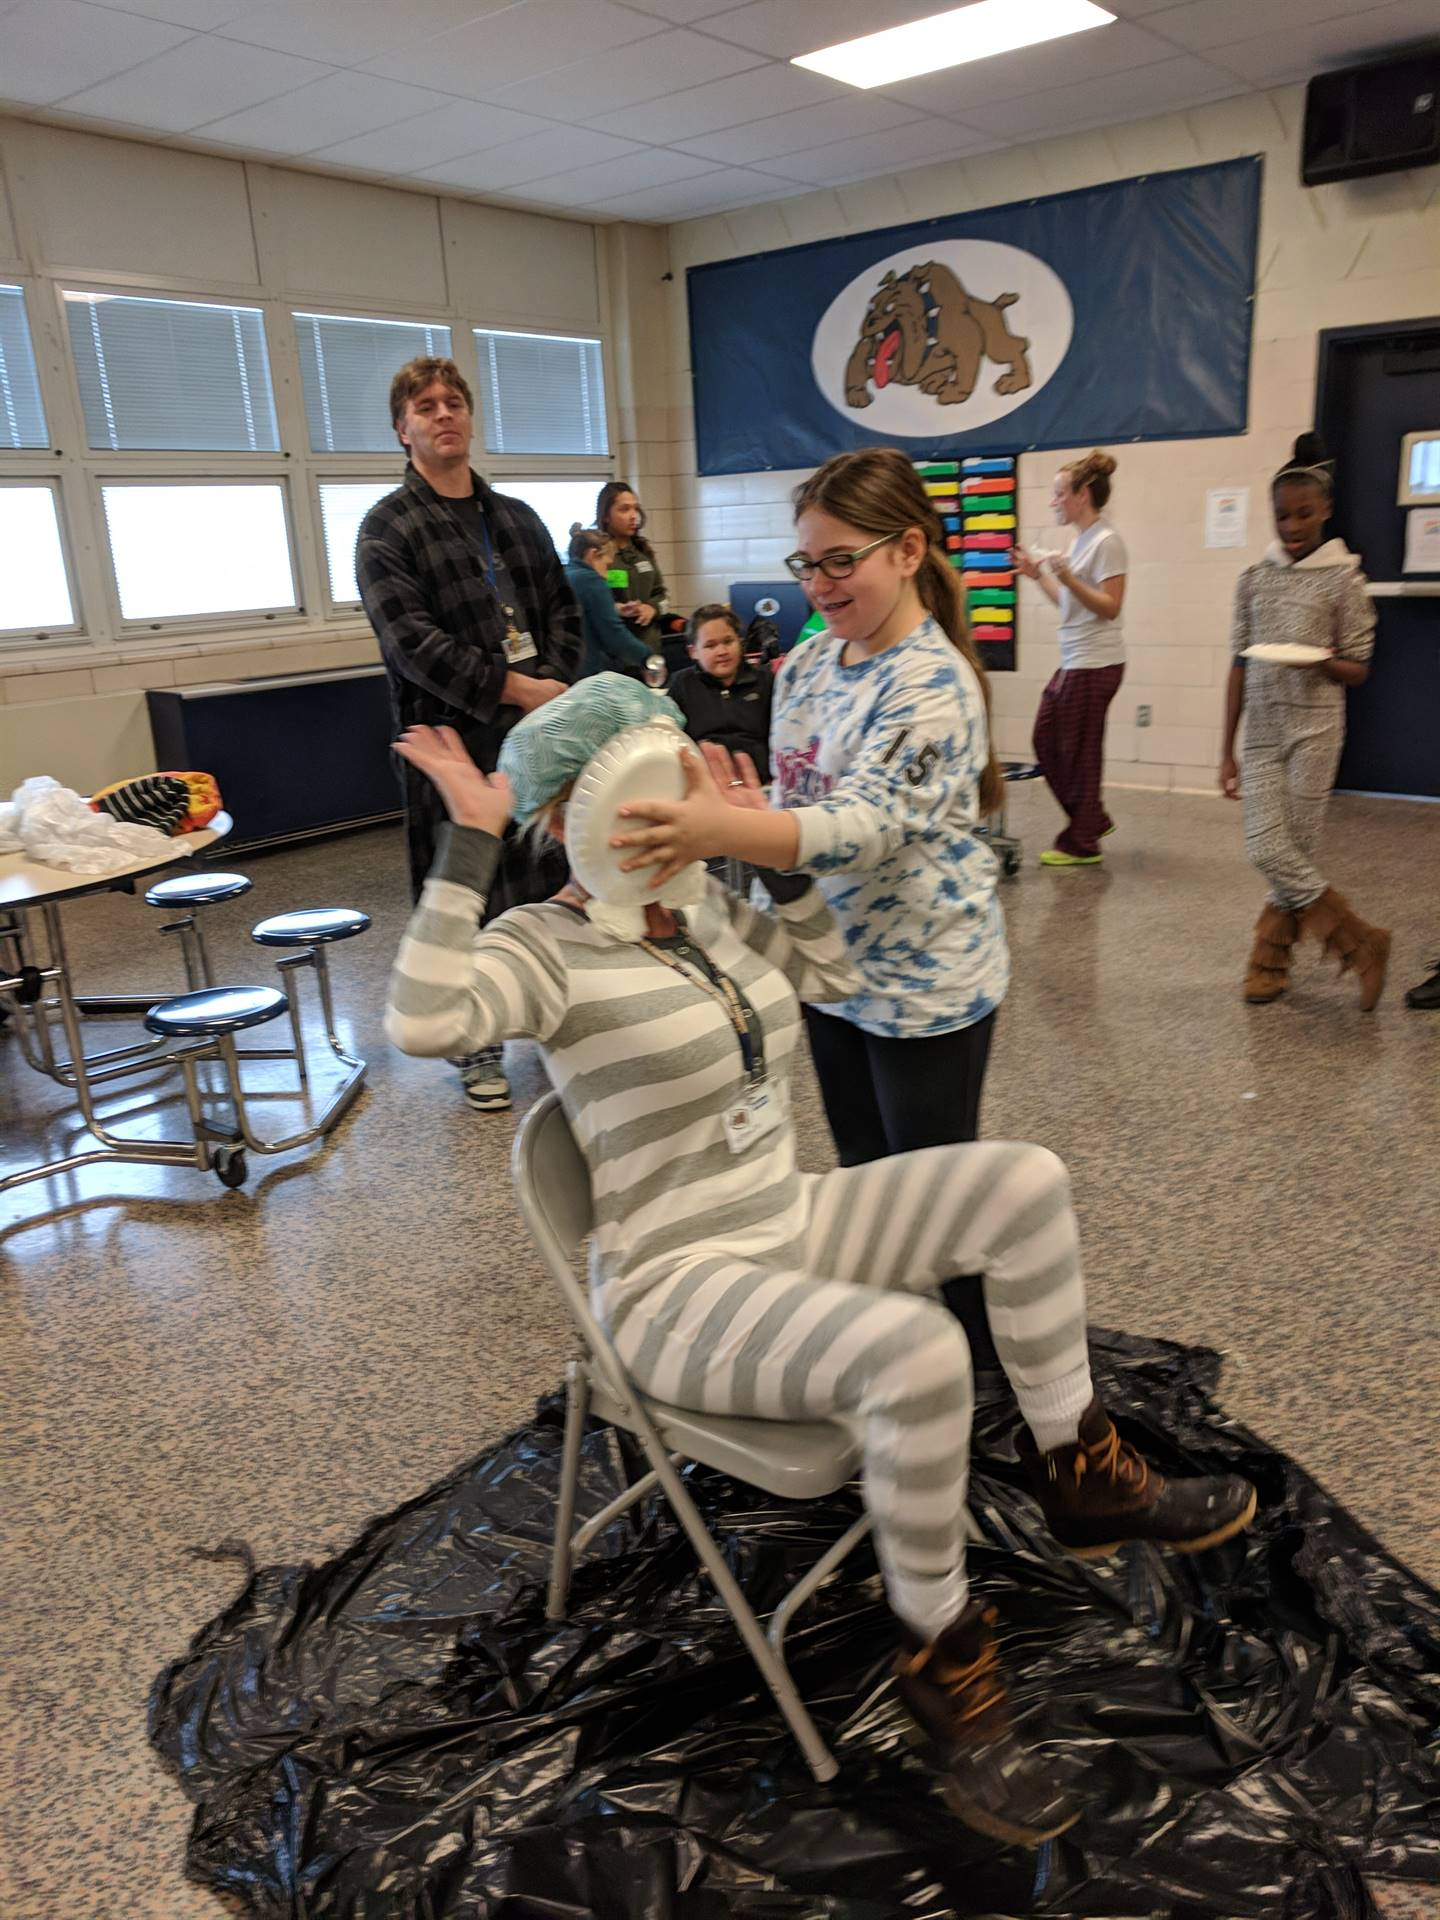 pie a teacher in the face